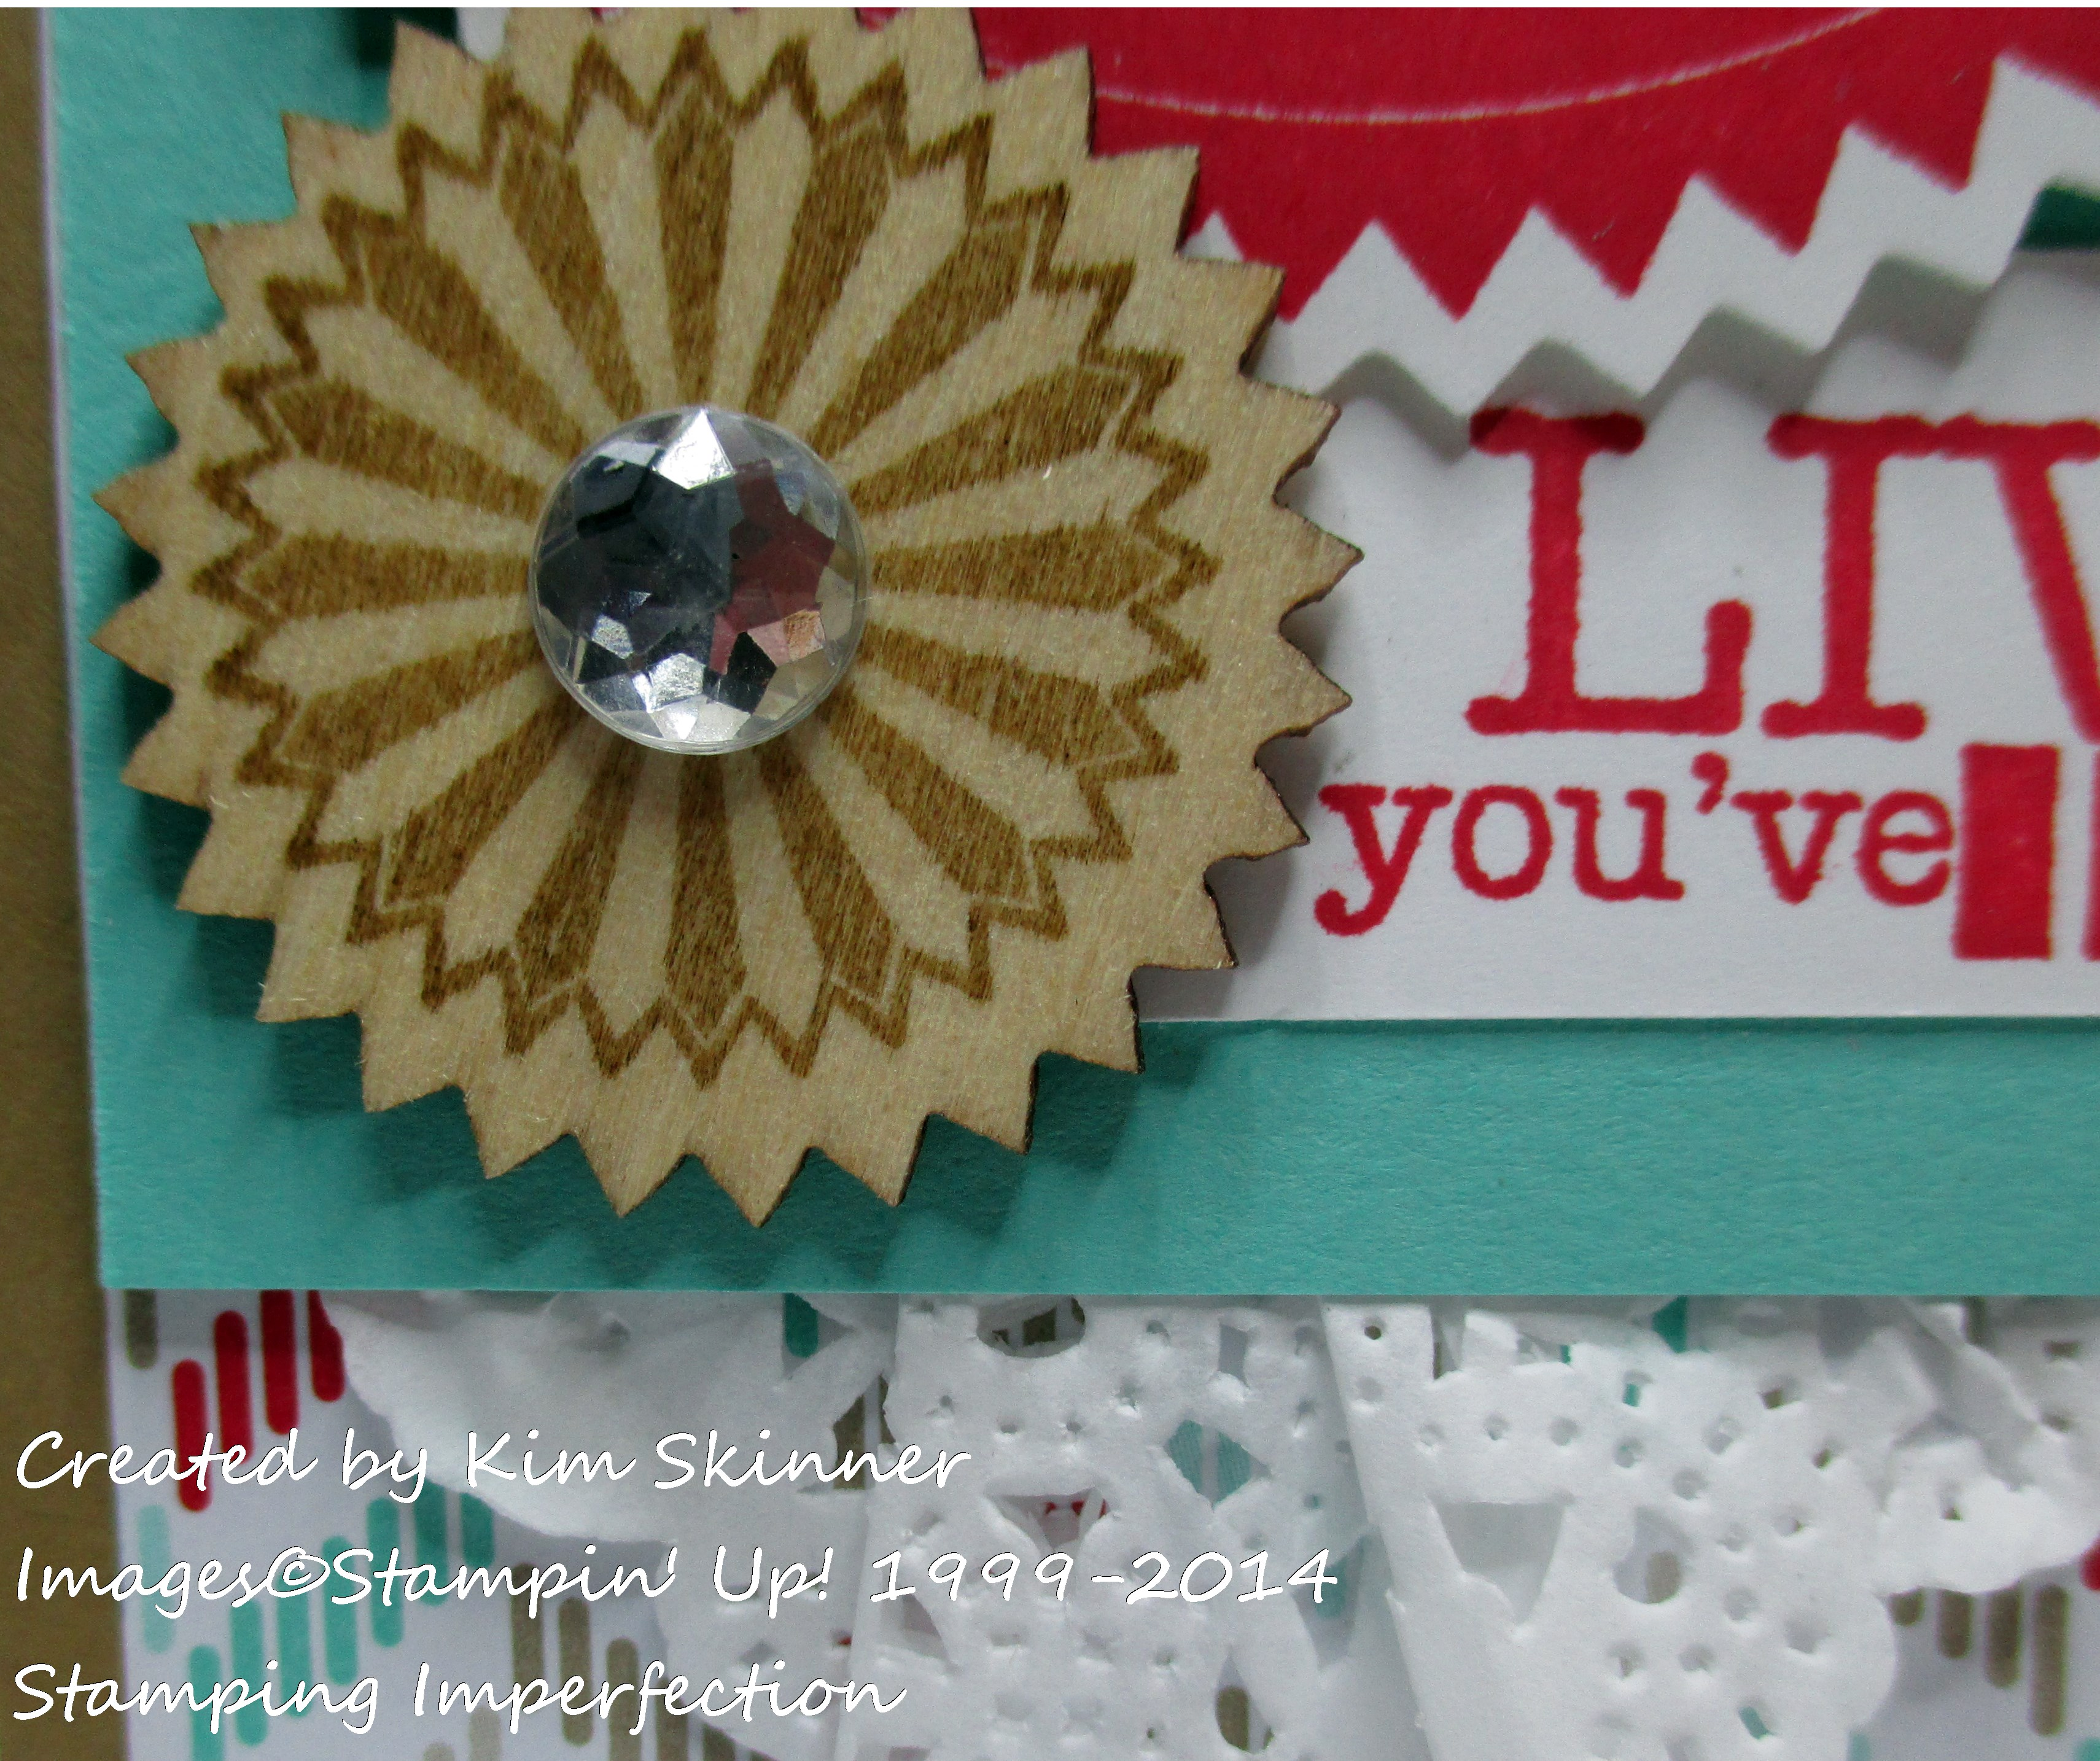 stamping imperfection live the life